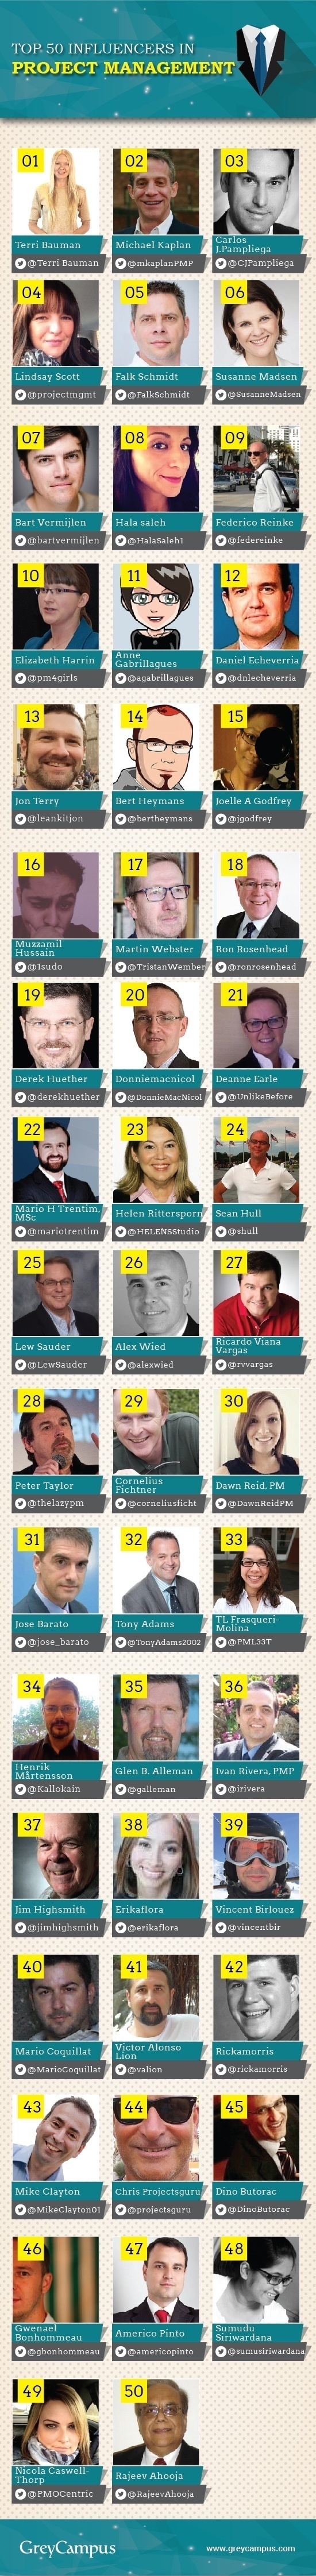 Top 50 Influencers for Project Management